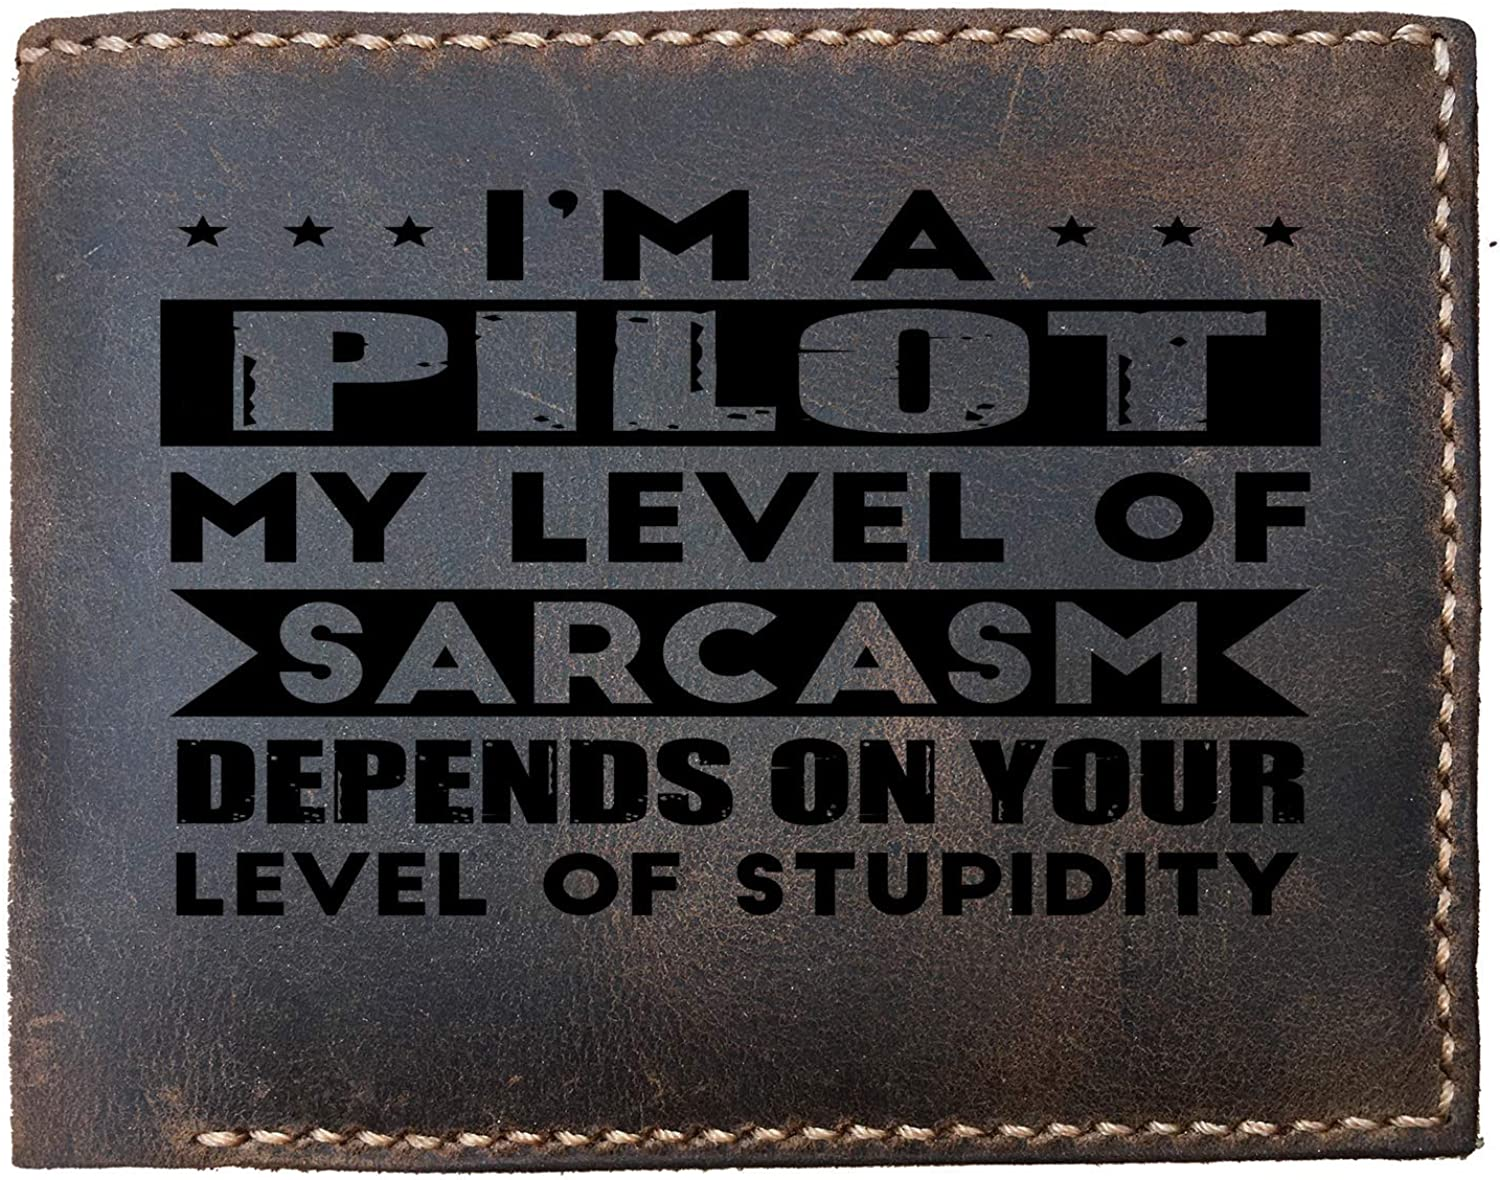 Lobsteray Level Of Pilots Sarcasm Funny Offensive Custom Laser Engraved Leather Bifold Wallet for Men